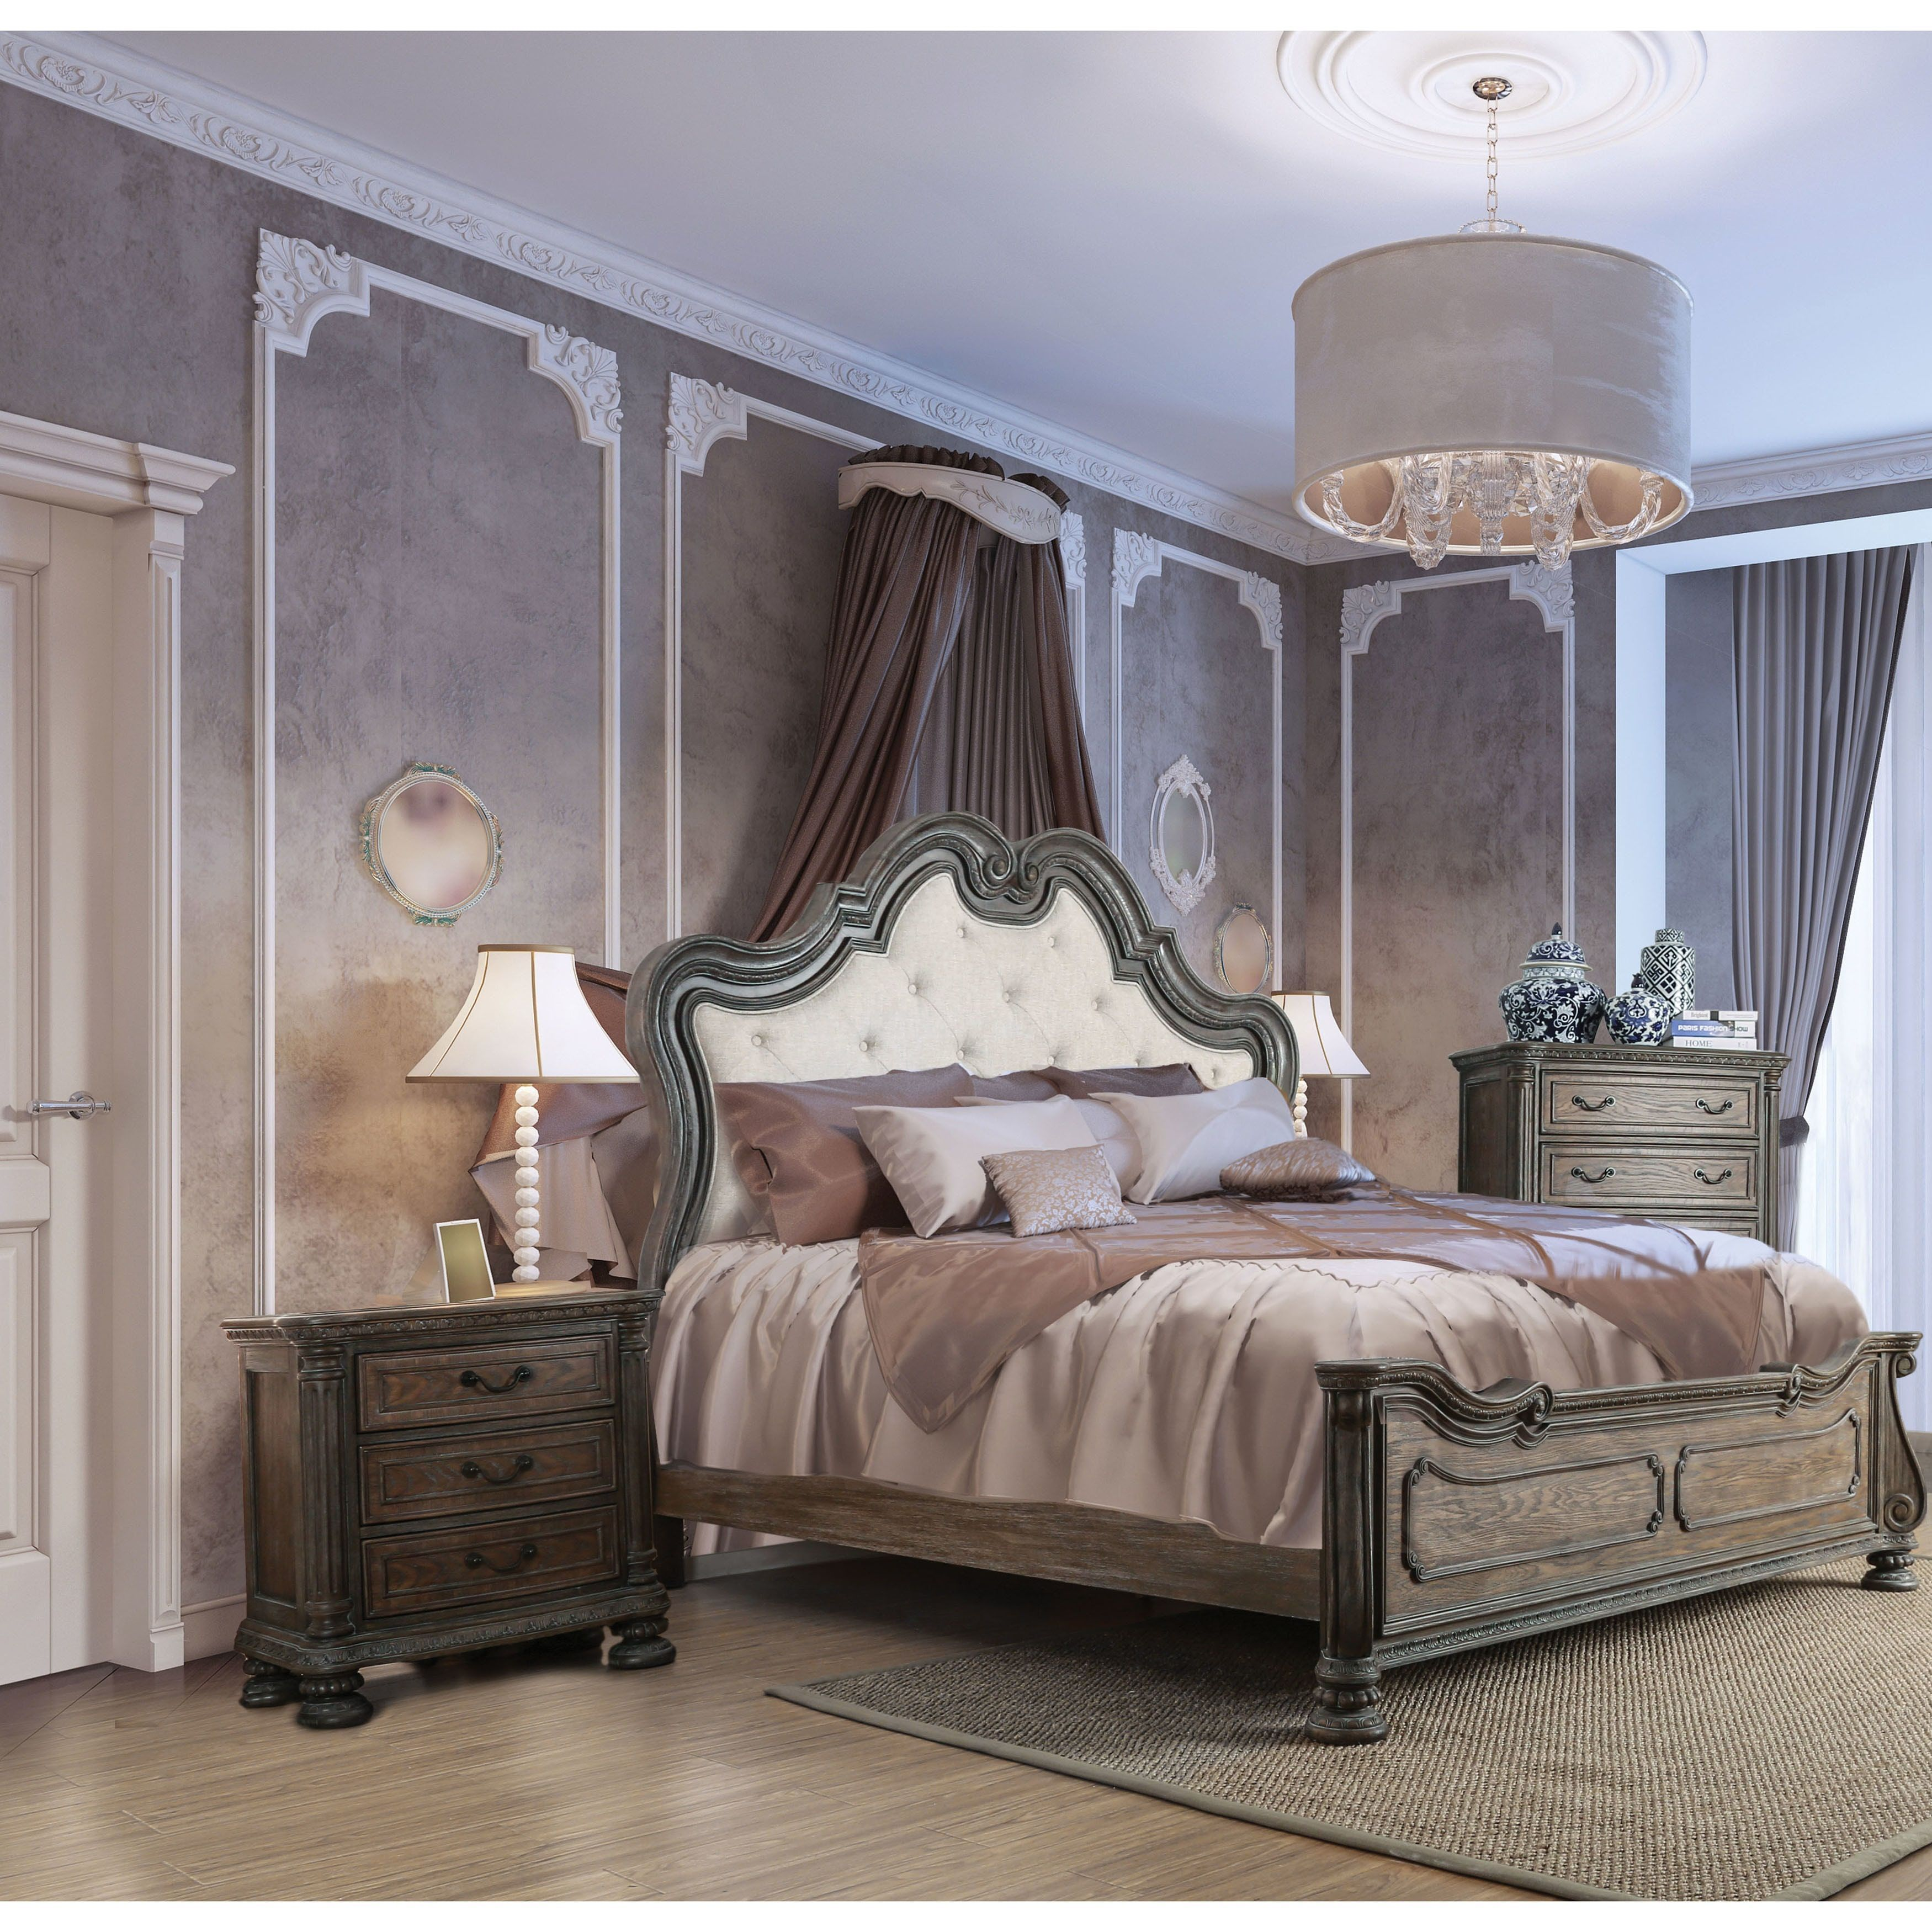 Furniture Of America Brigette Traditional 3 Piece Ornate Rustic Natural Tone Bedroom Set Cal King Size California